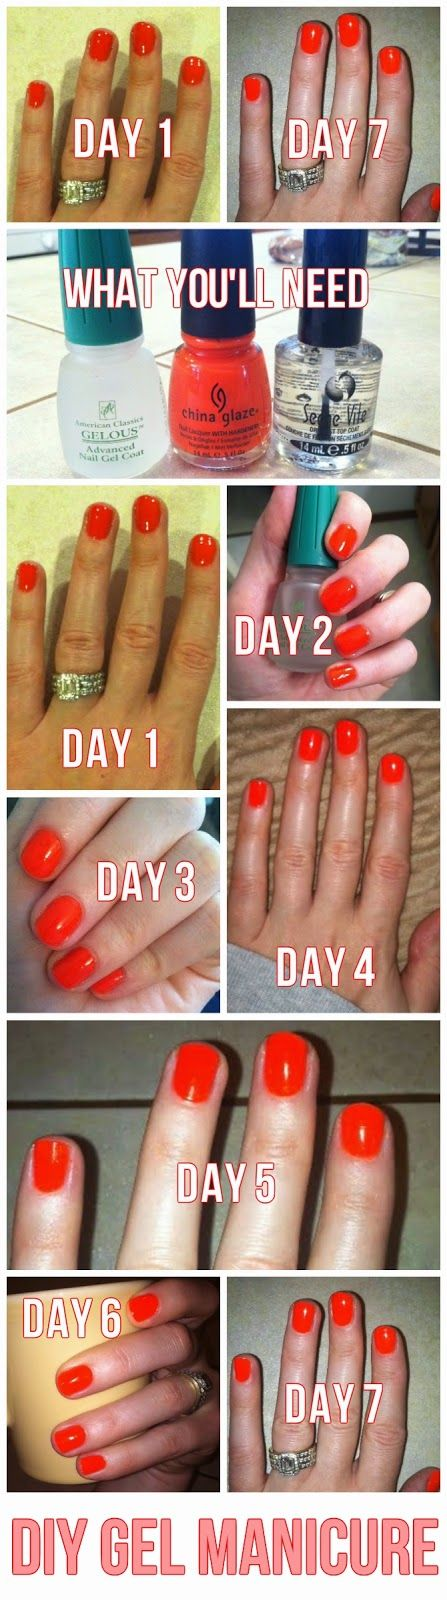 DIY Gel Manicure with NO Lamp! | Let's Talk About Lipstick -- UPDATE: did this and it lasted the whole week with only one chip. It came off easily and looked amazing. Hooked. -AJ